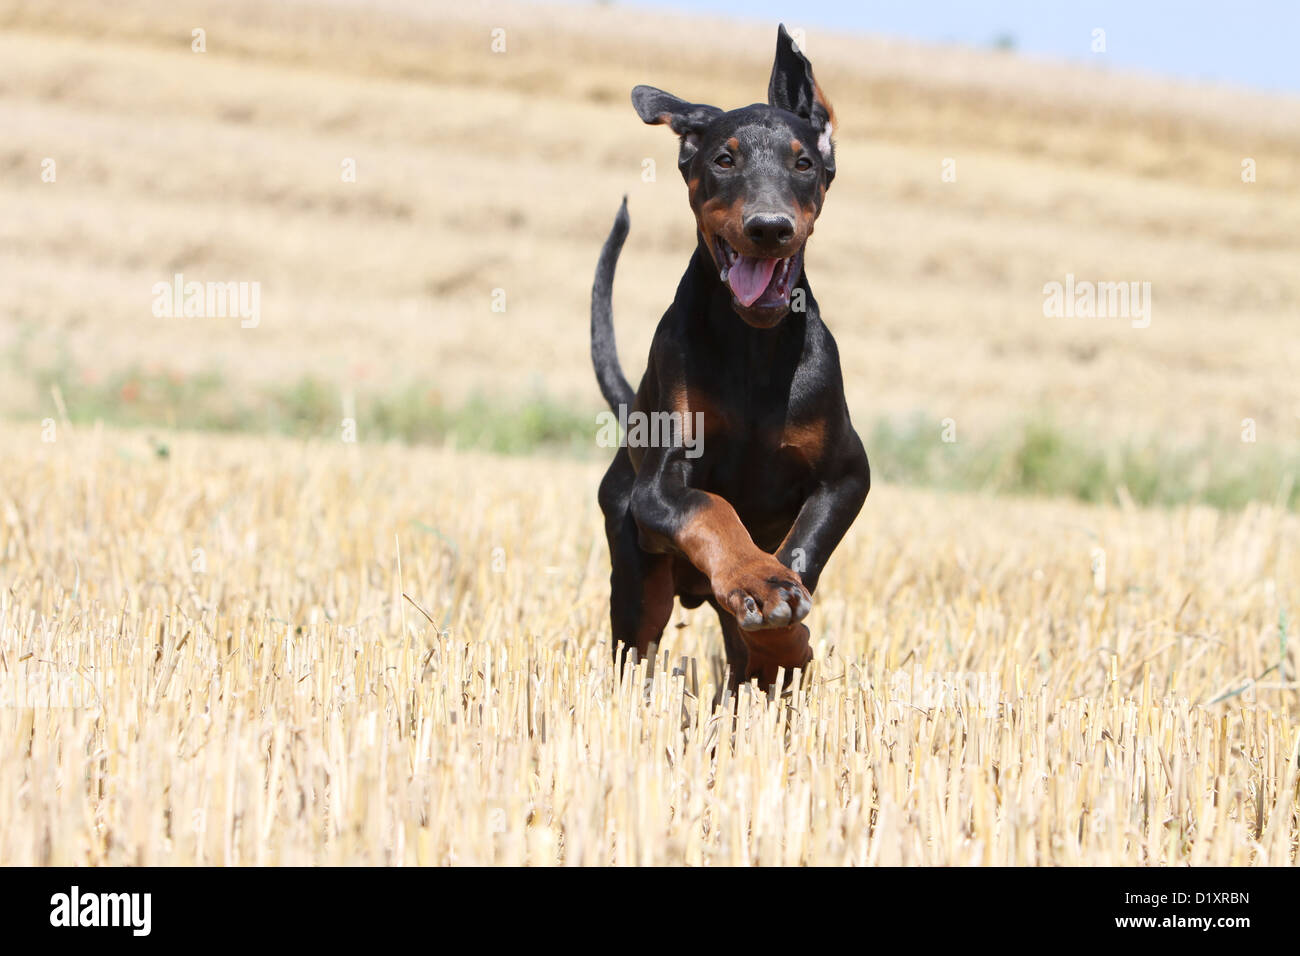 Pictures Of Doberman Pinscher With Uncropped Ears And Tail Rock Cafe